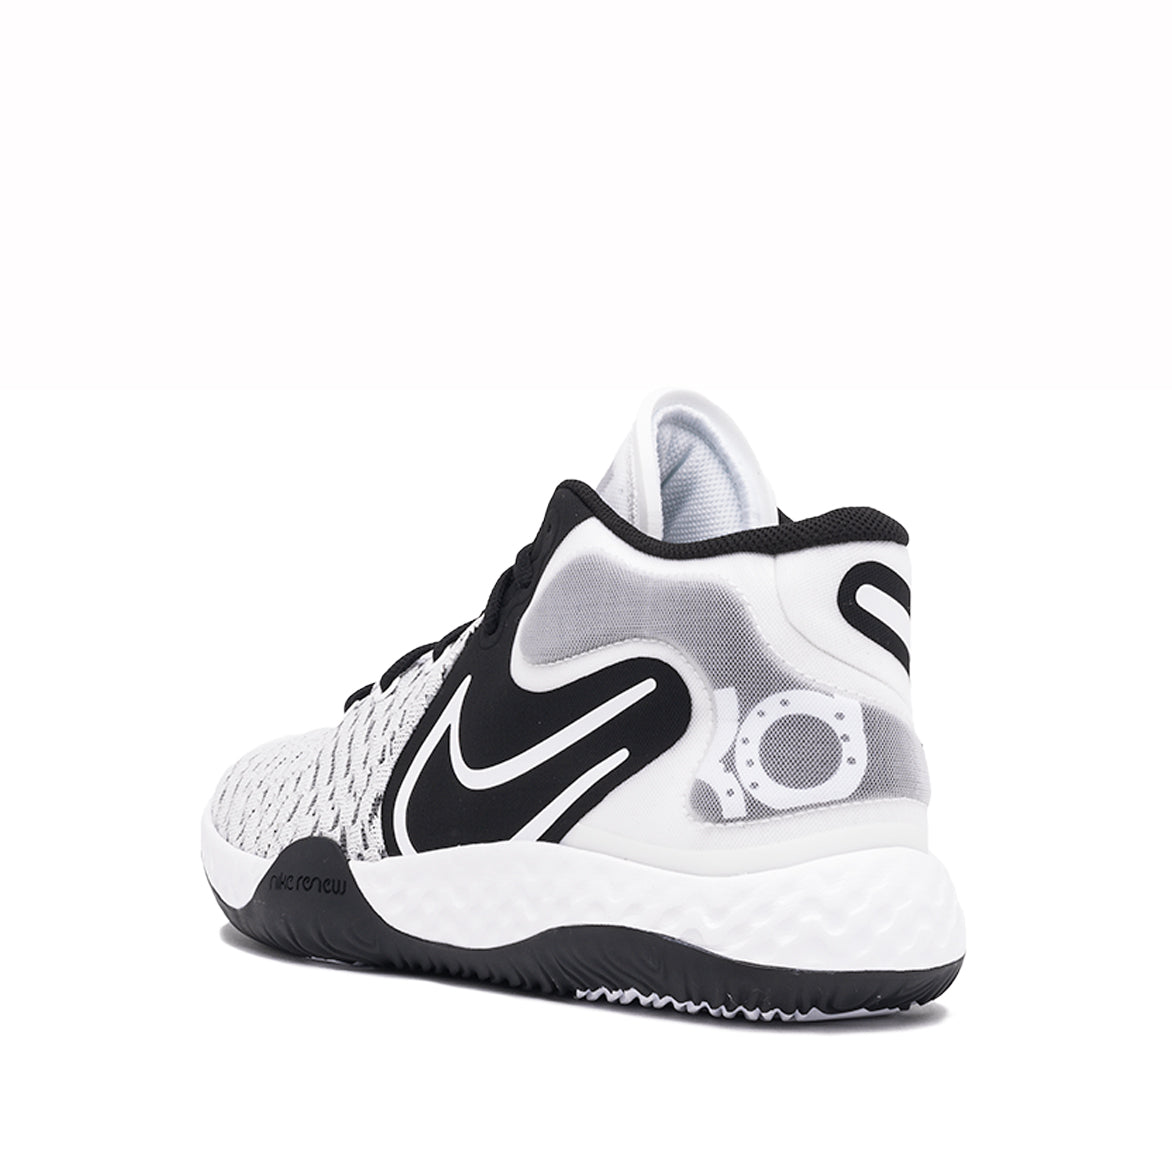 KD TREY 5 VIII - WHITE / BLACK